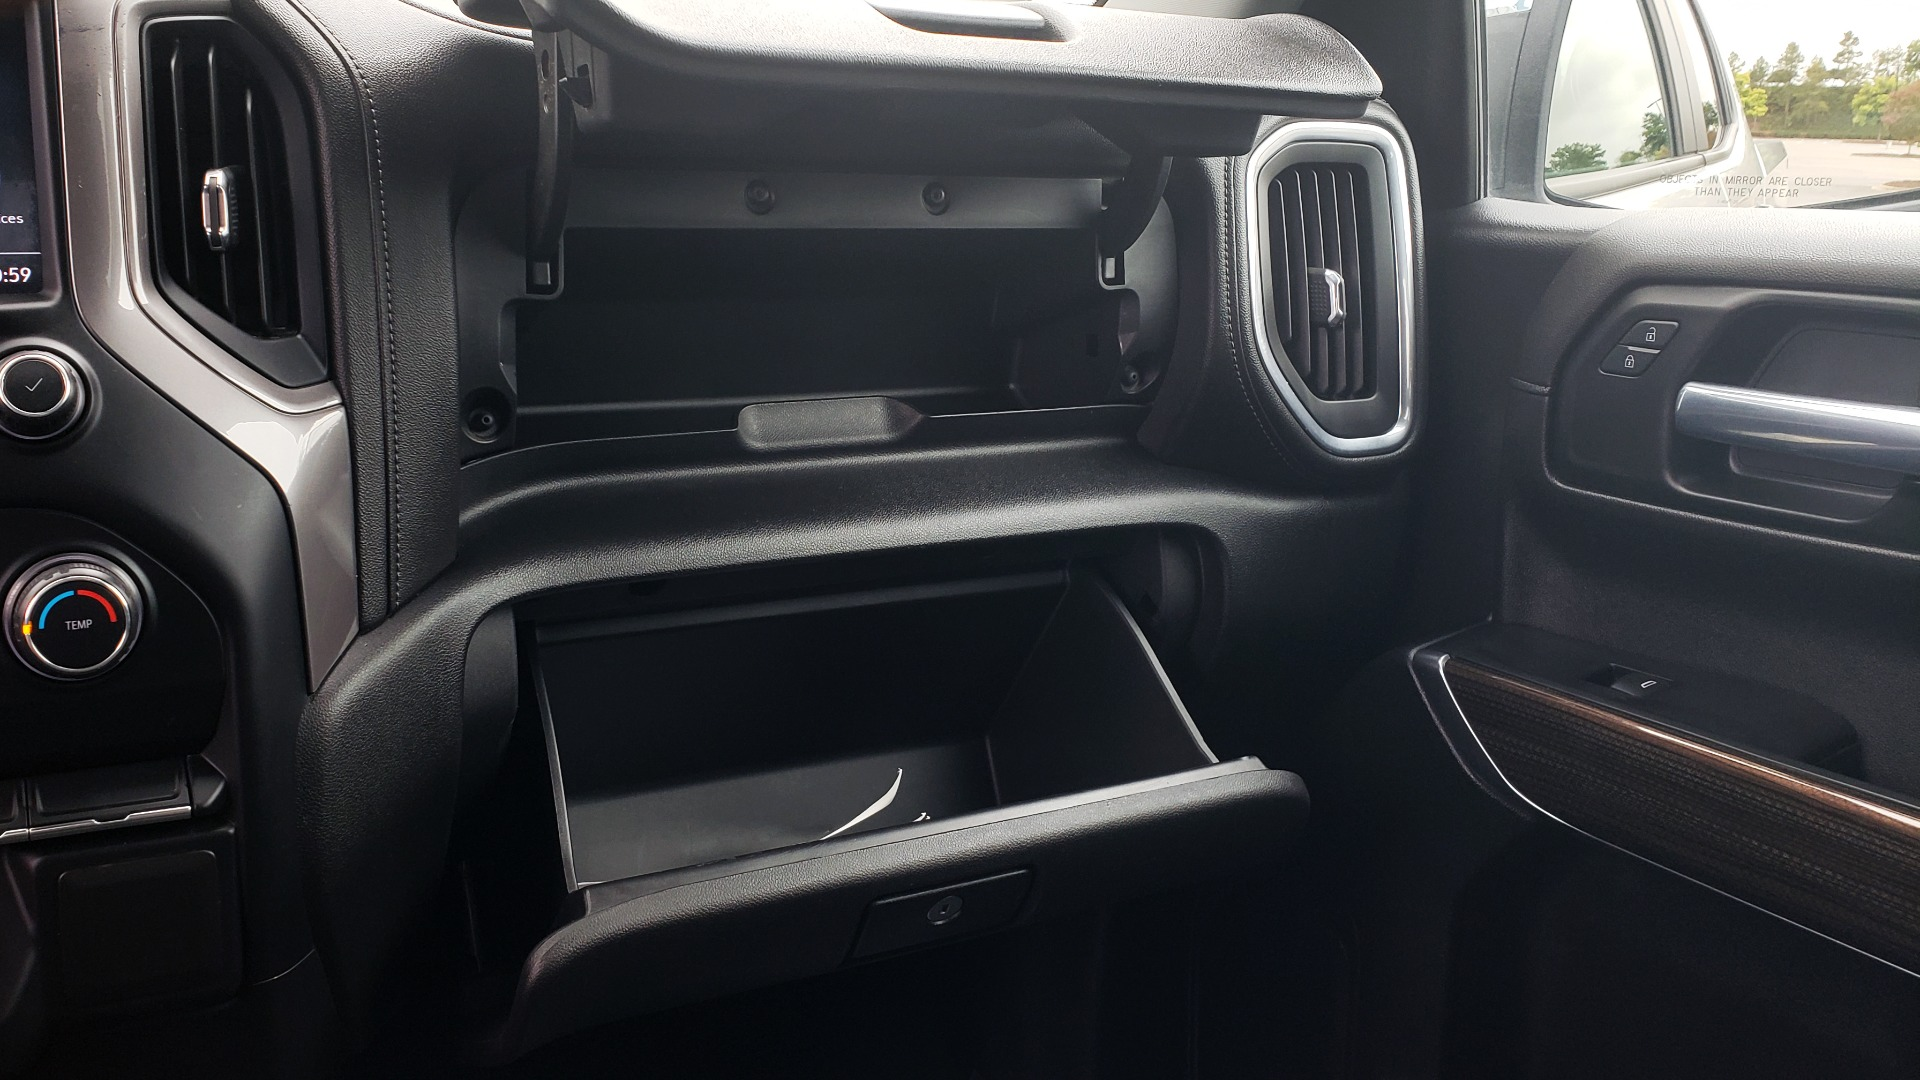 Used 2020 Chevrolet SILVERADO 1500 LT 4WD DOUBLECAB 147 WB / 5.3L V8 / BEDLINER / REARVIEW for sale $41,995 at Formula Imports in Charlotte NC 28227 47